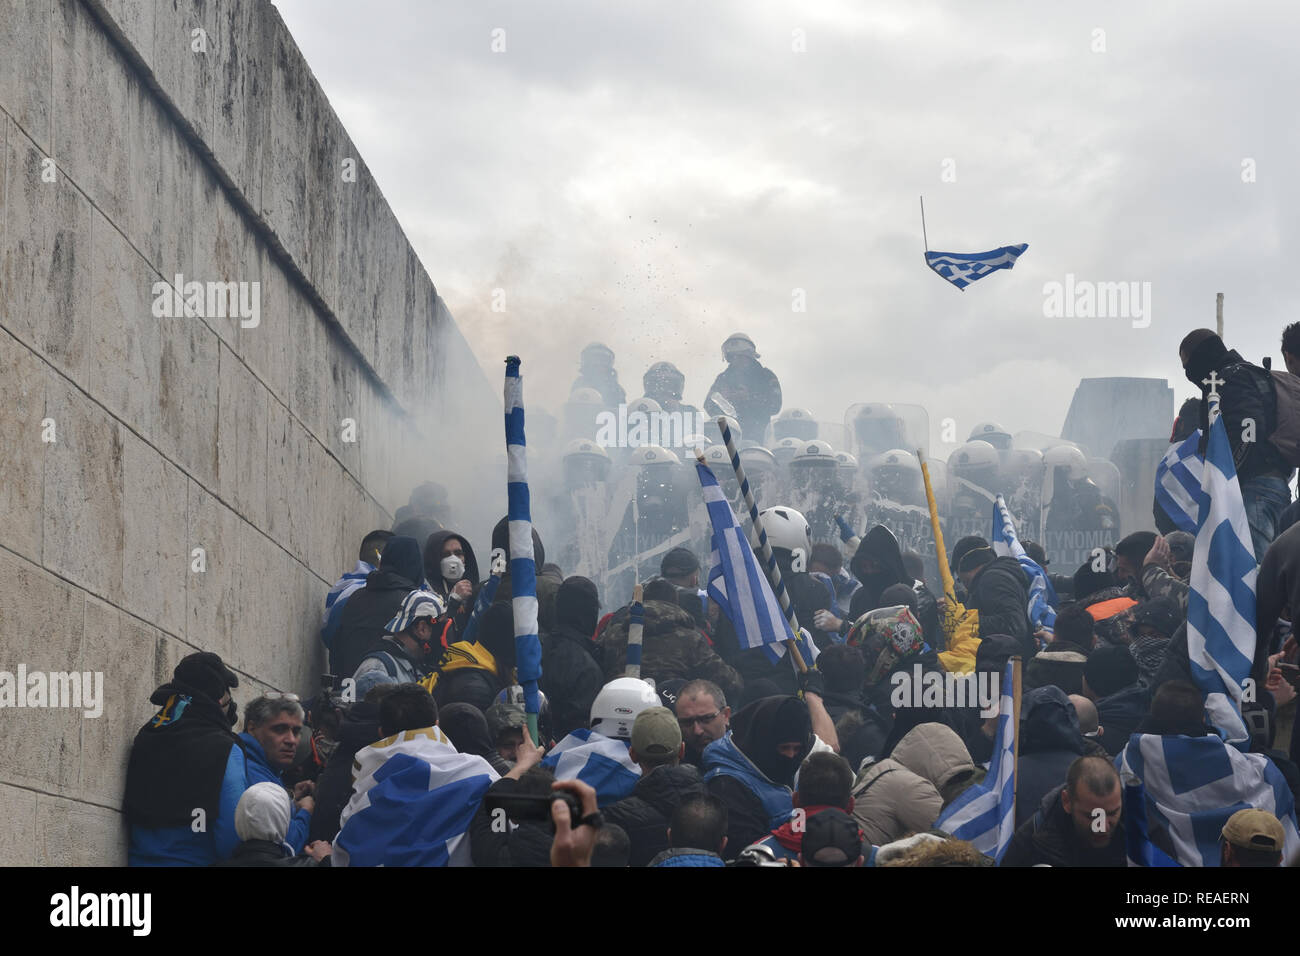 Athens, Greece  20th Jan 2019  Protesters clash with riot police